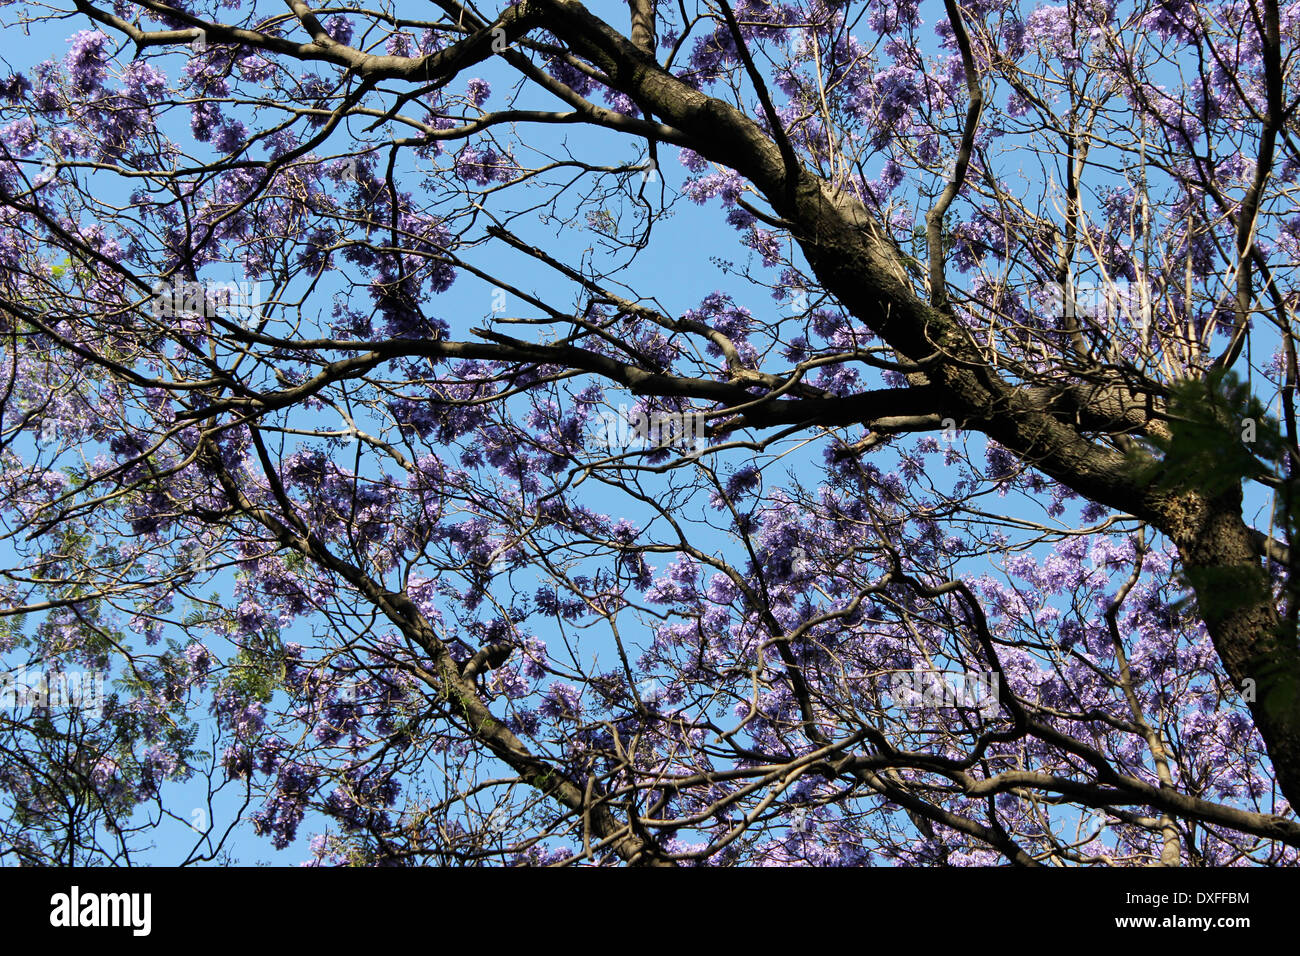 Purple Flowers Of The Jacaranda Tree In Bloom Mexico City Stock